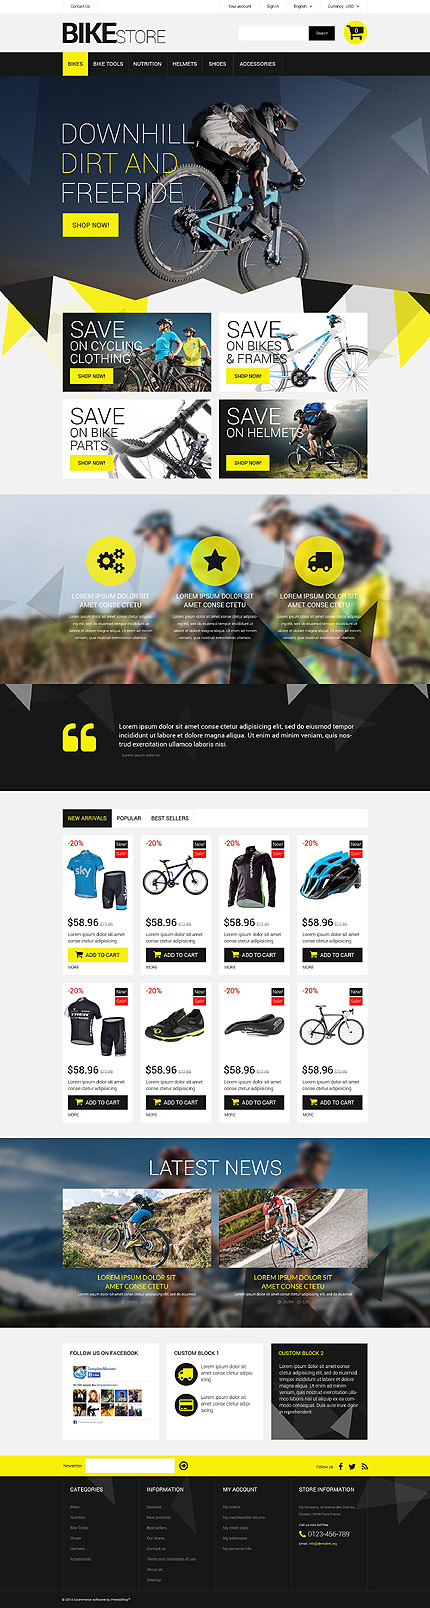 Template 52283 - Bikes Store Responsive PrestaShop Theme, Triangle Design, Lazy Load, Slider, Product Slideshows with Image Zoom, Animated Custom Blocks and Blog